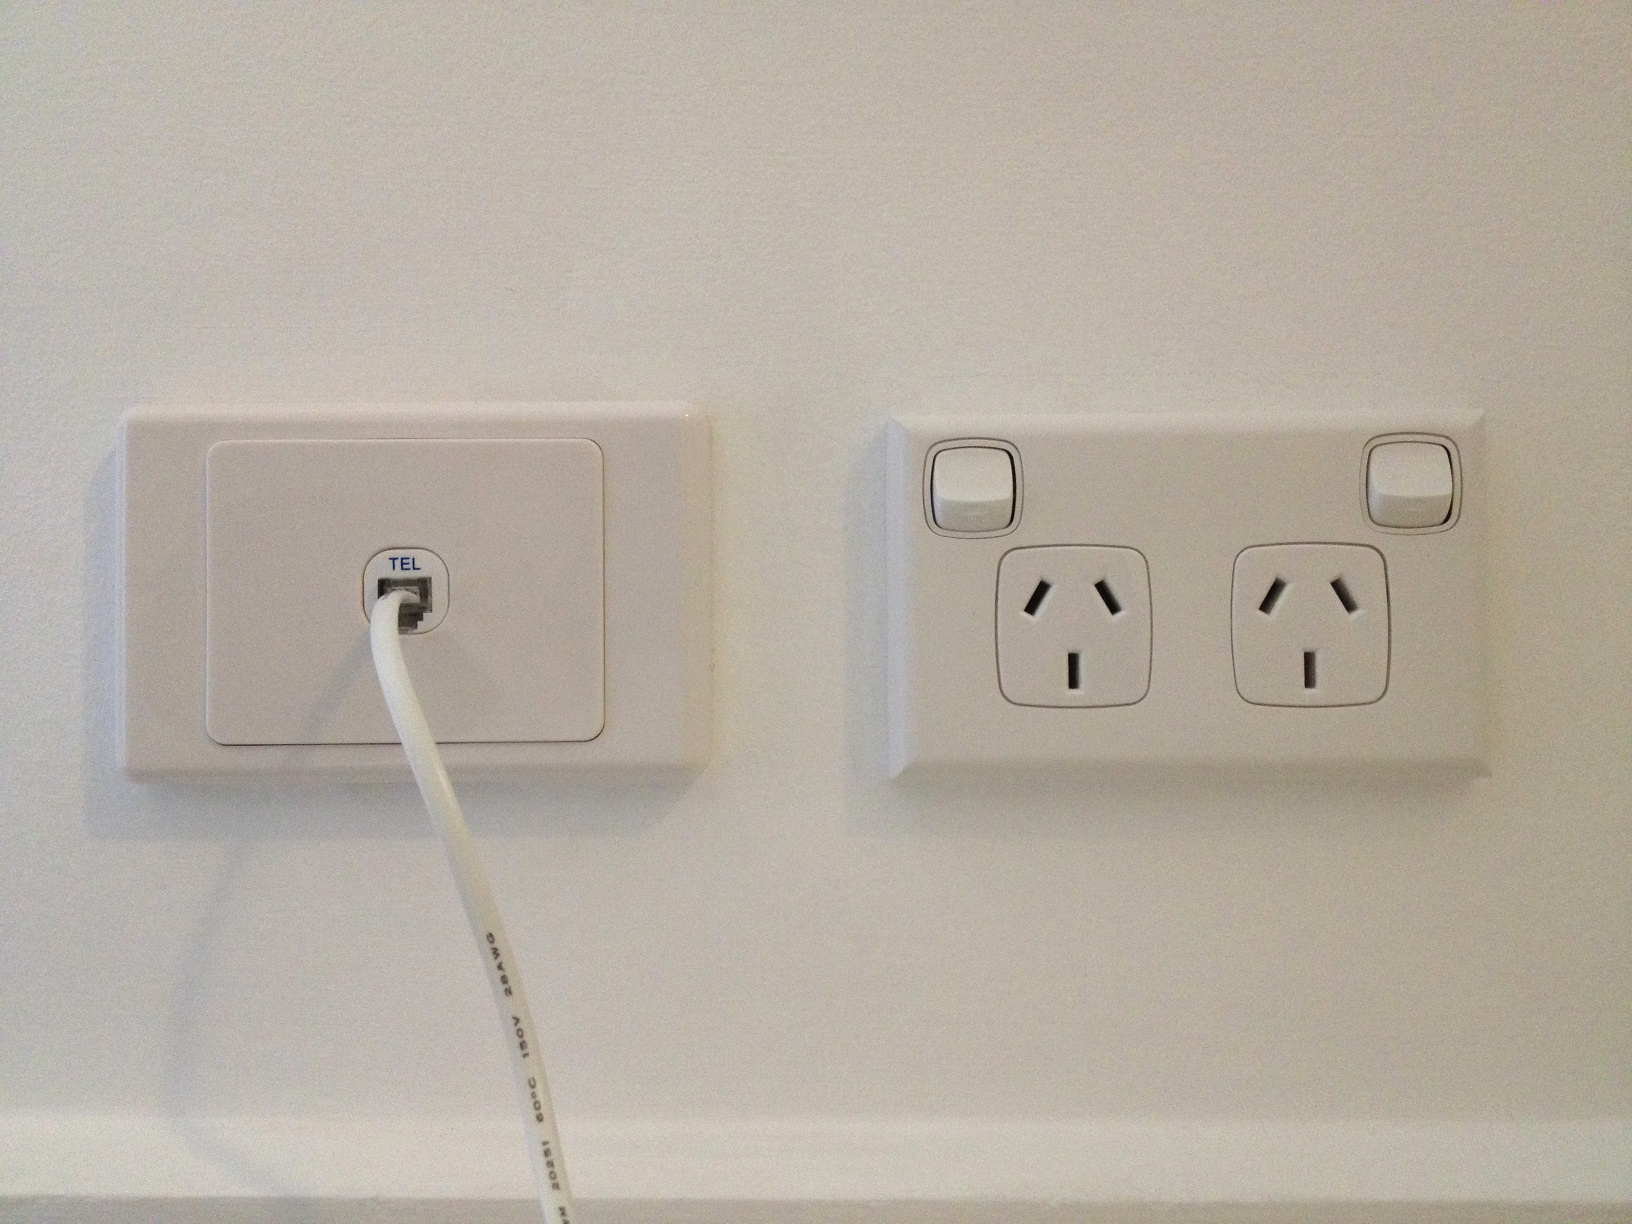 phone socket upgraded1?w=640&h=480 upgrading a 600 series phone socket to rj11 tp69 telstra wall plate wiring diagram at webbmarketing.co